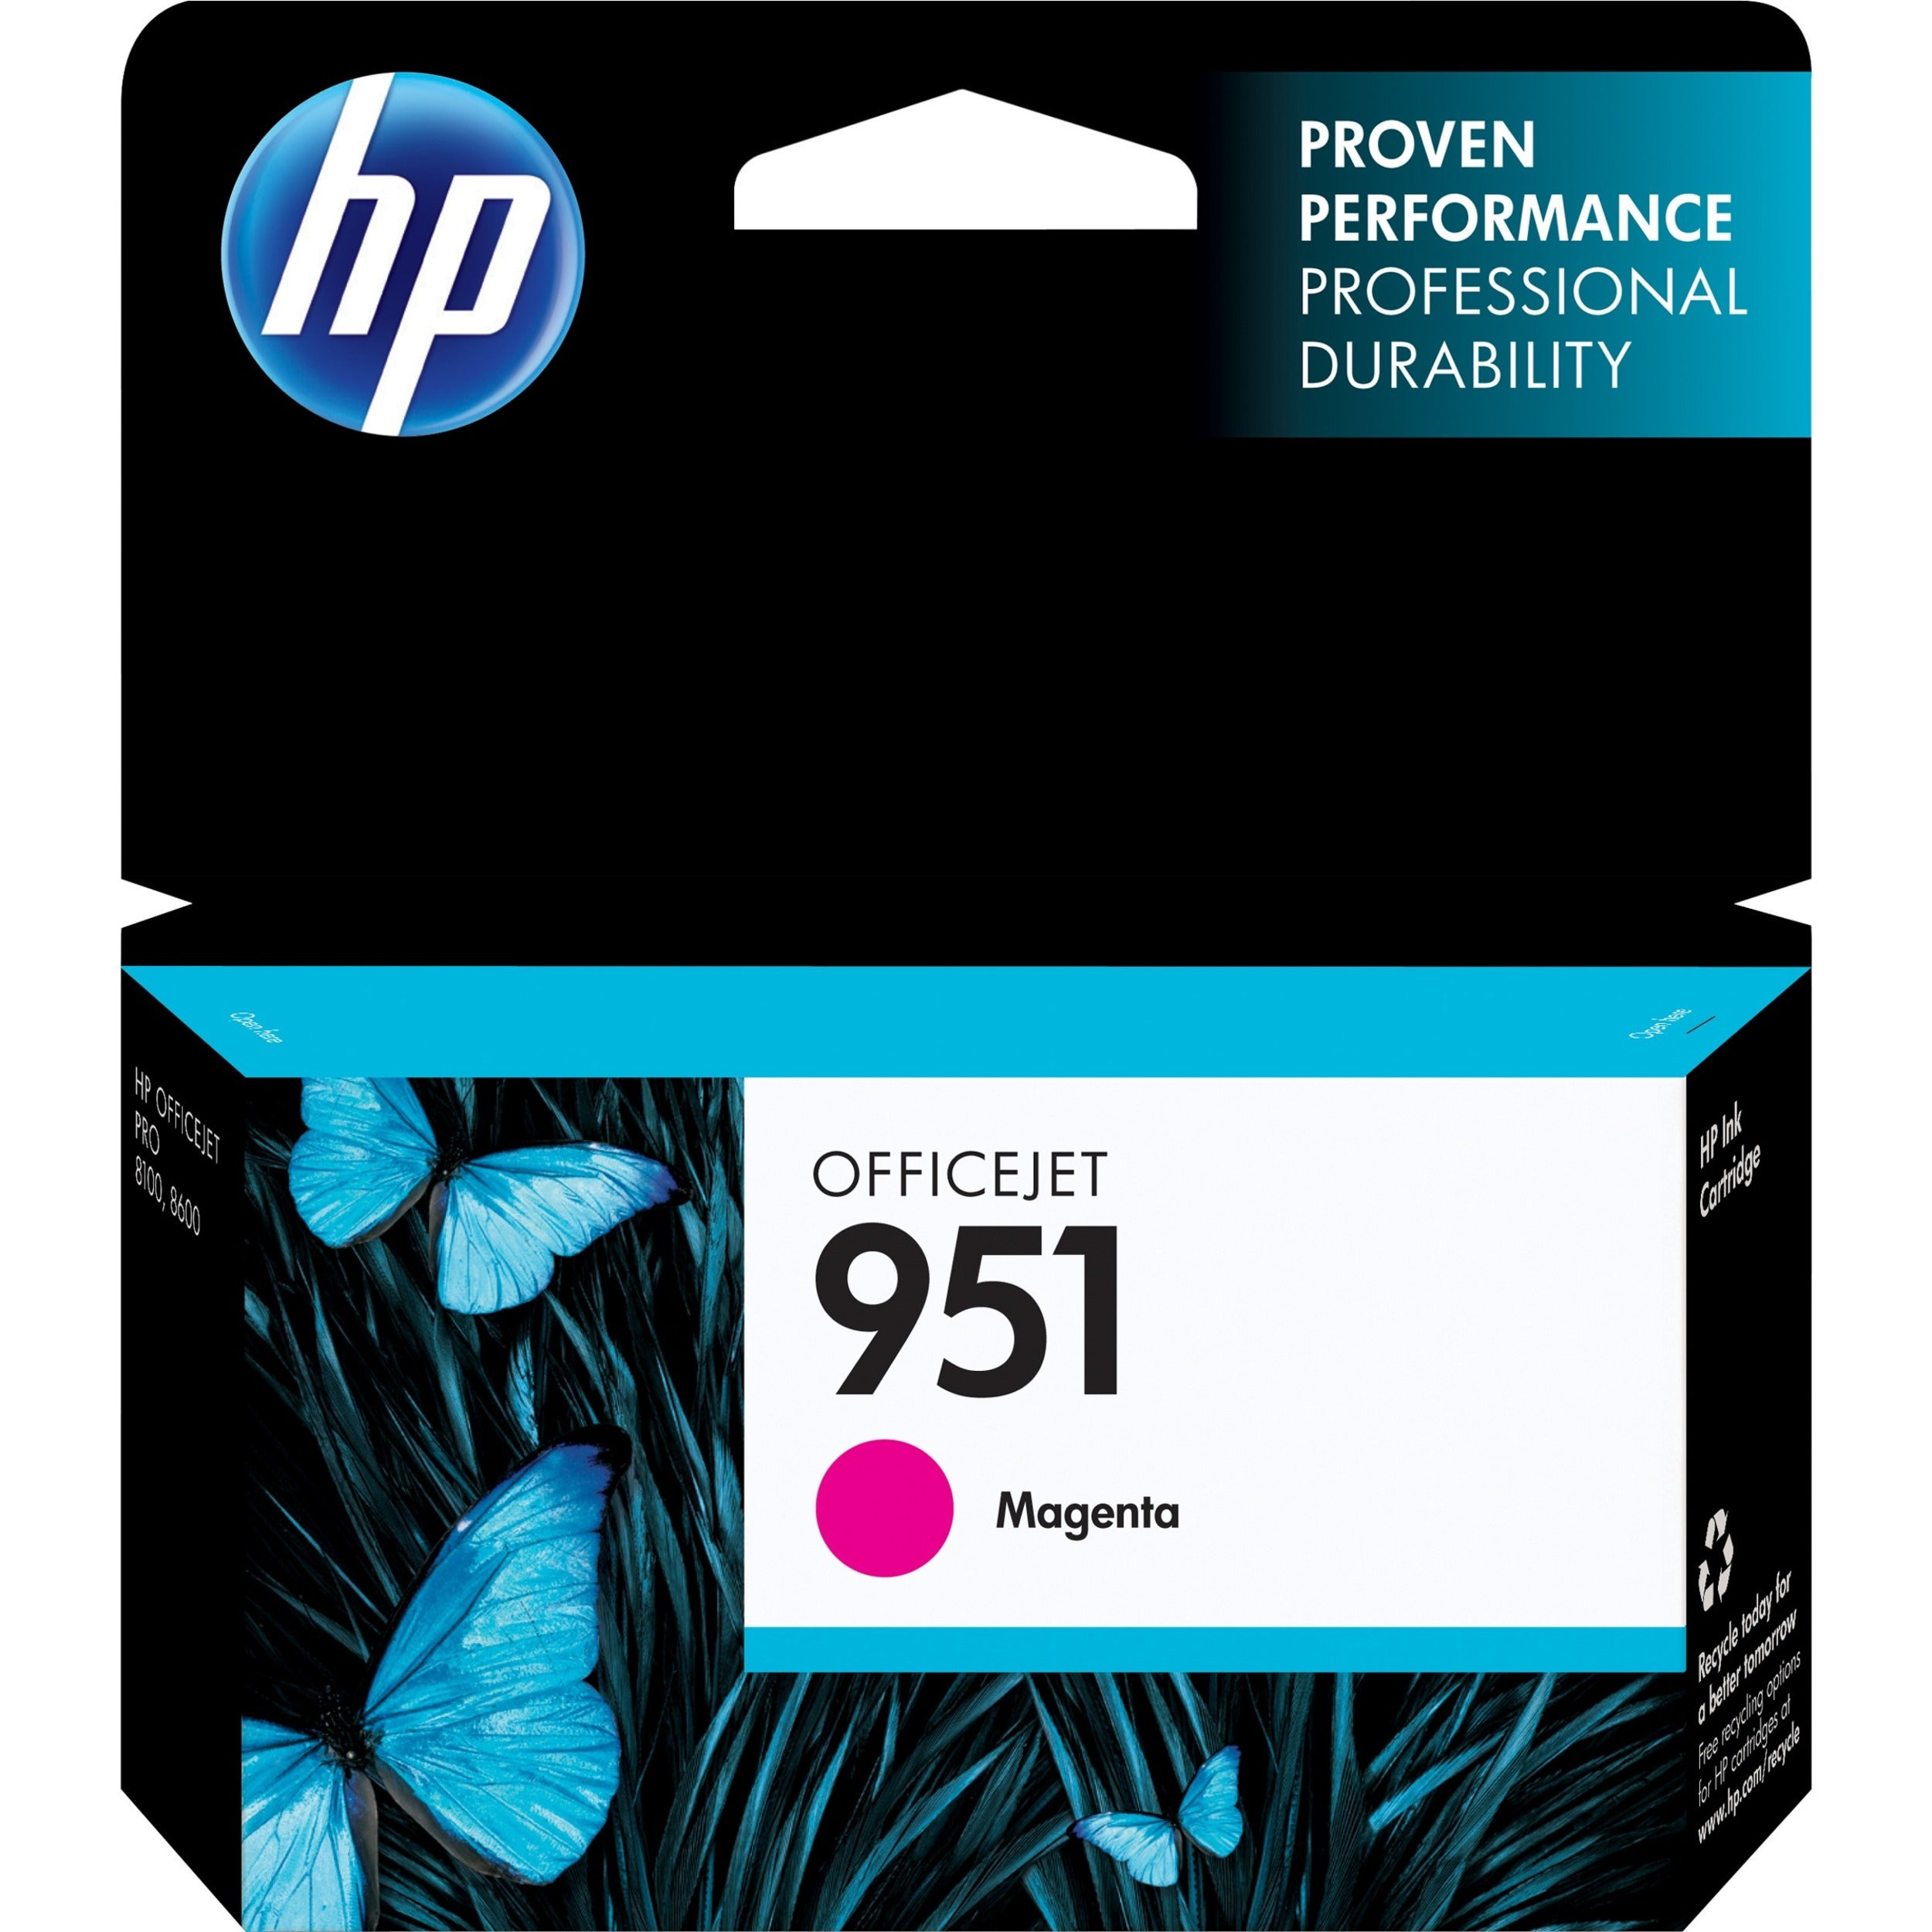 HP 951 Original Ink Cartridge - Magenta - Thumbnail 0